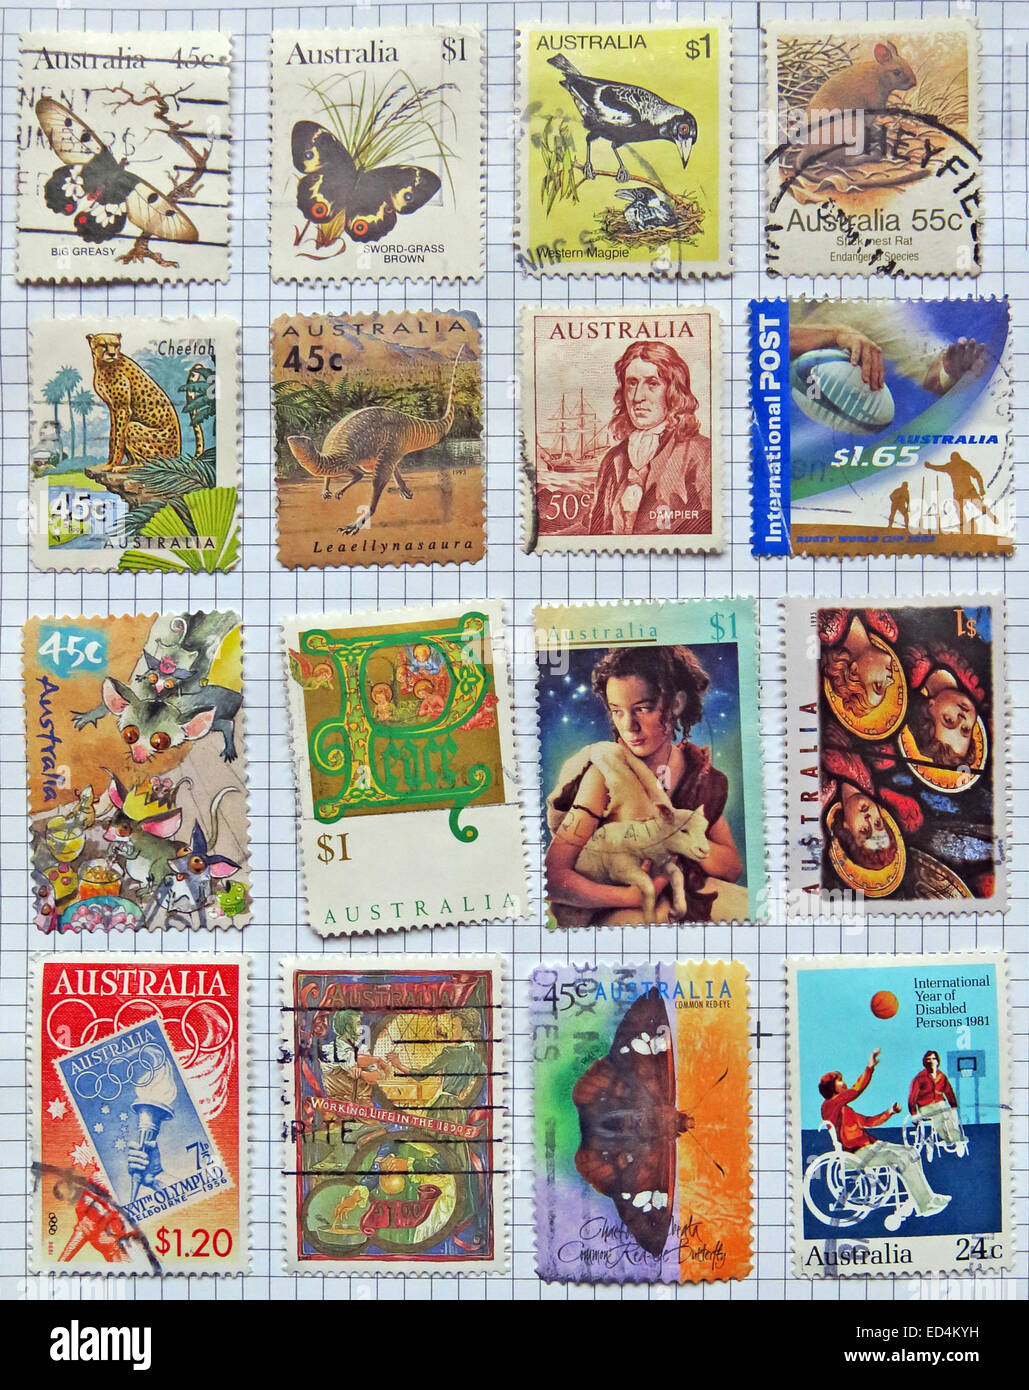 Australia,sheet,of,used,stamp,various,colourful,colorful,background,collecting,collection,commonwealth,cutout,hobby,in,old,philately,postage,stamp,stamps,stuck,white,stuck down,down,queen,closeup,close-up,age,aged,gotonysmith